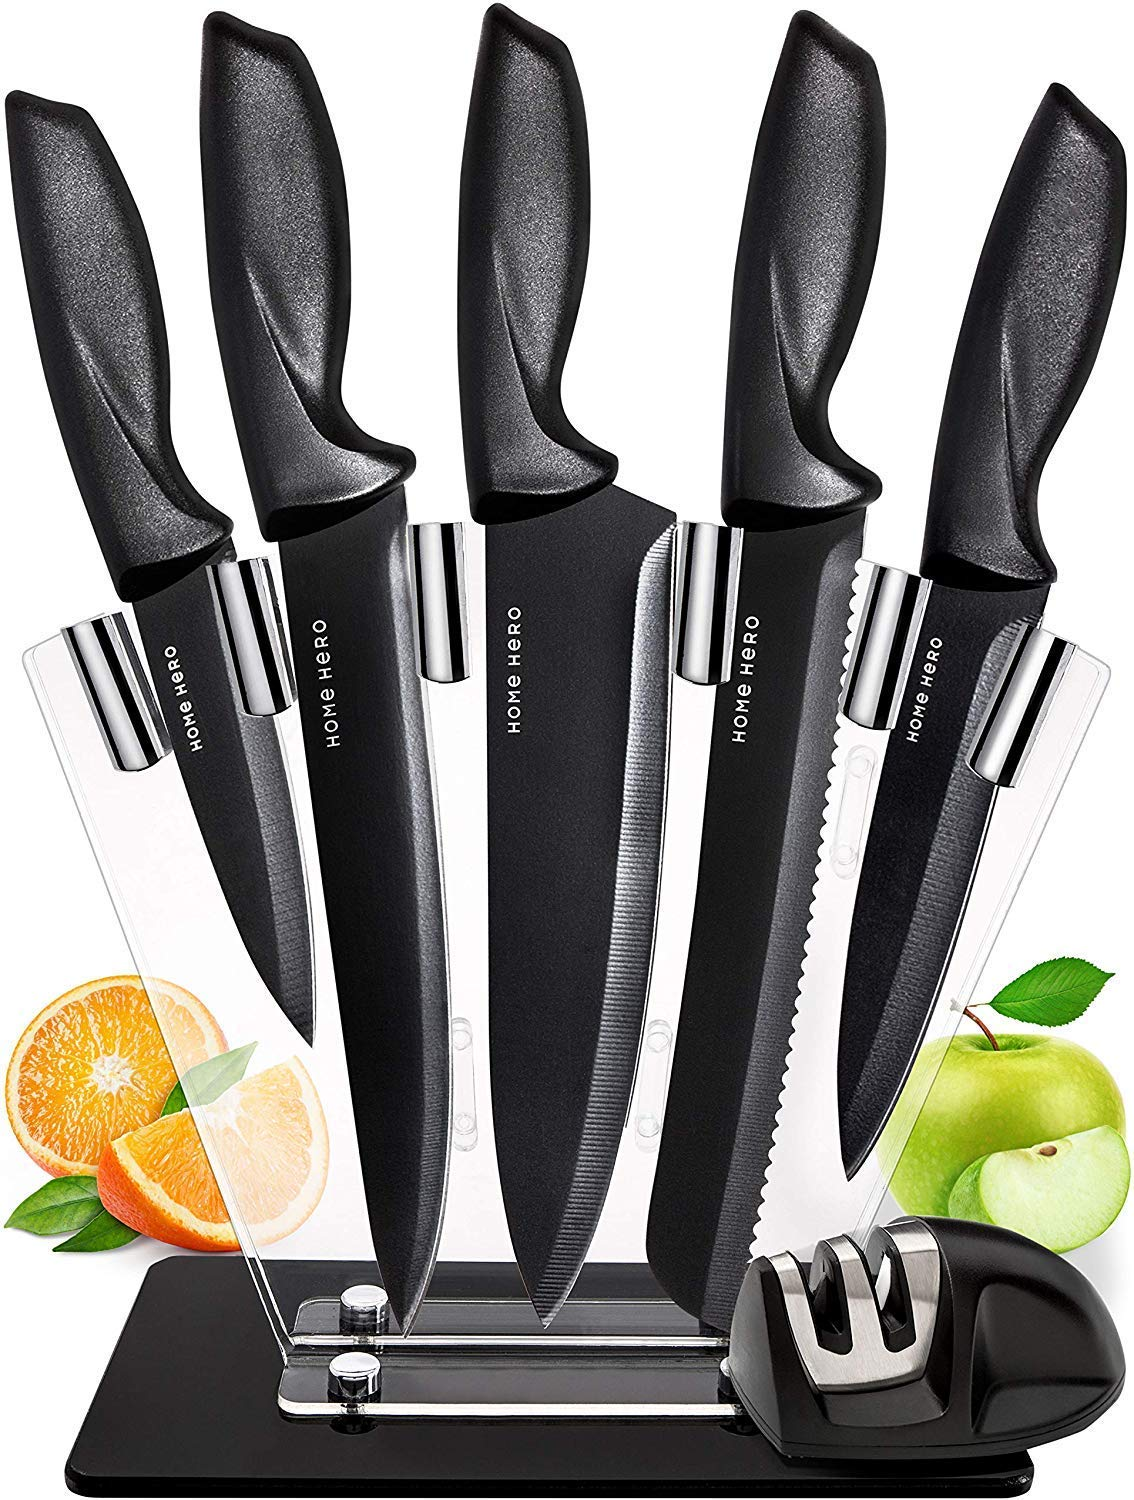 An Ultimate Guide To Buy Professional Knife Sets Quality On A Budget